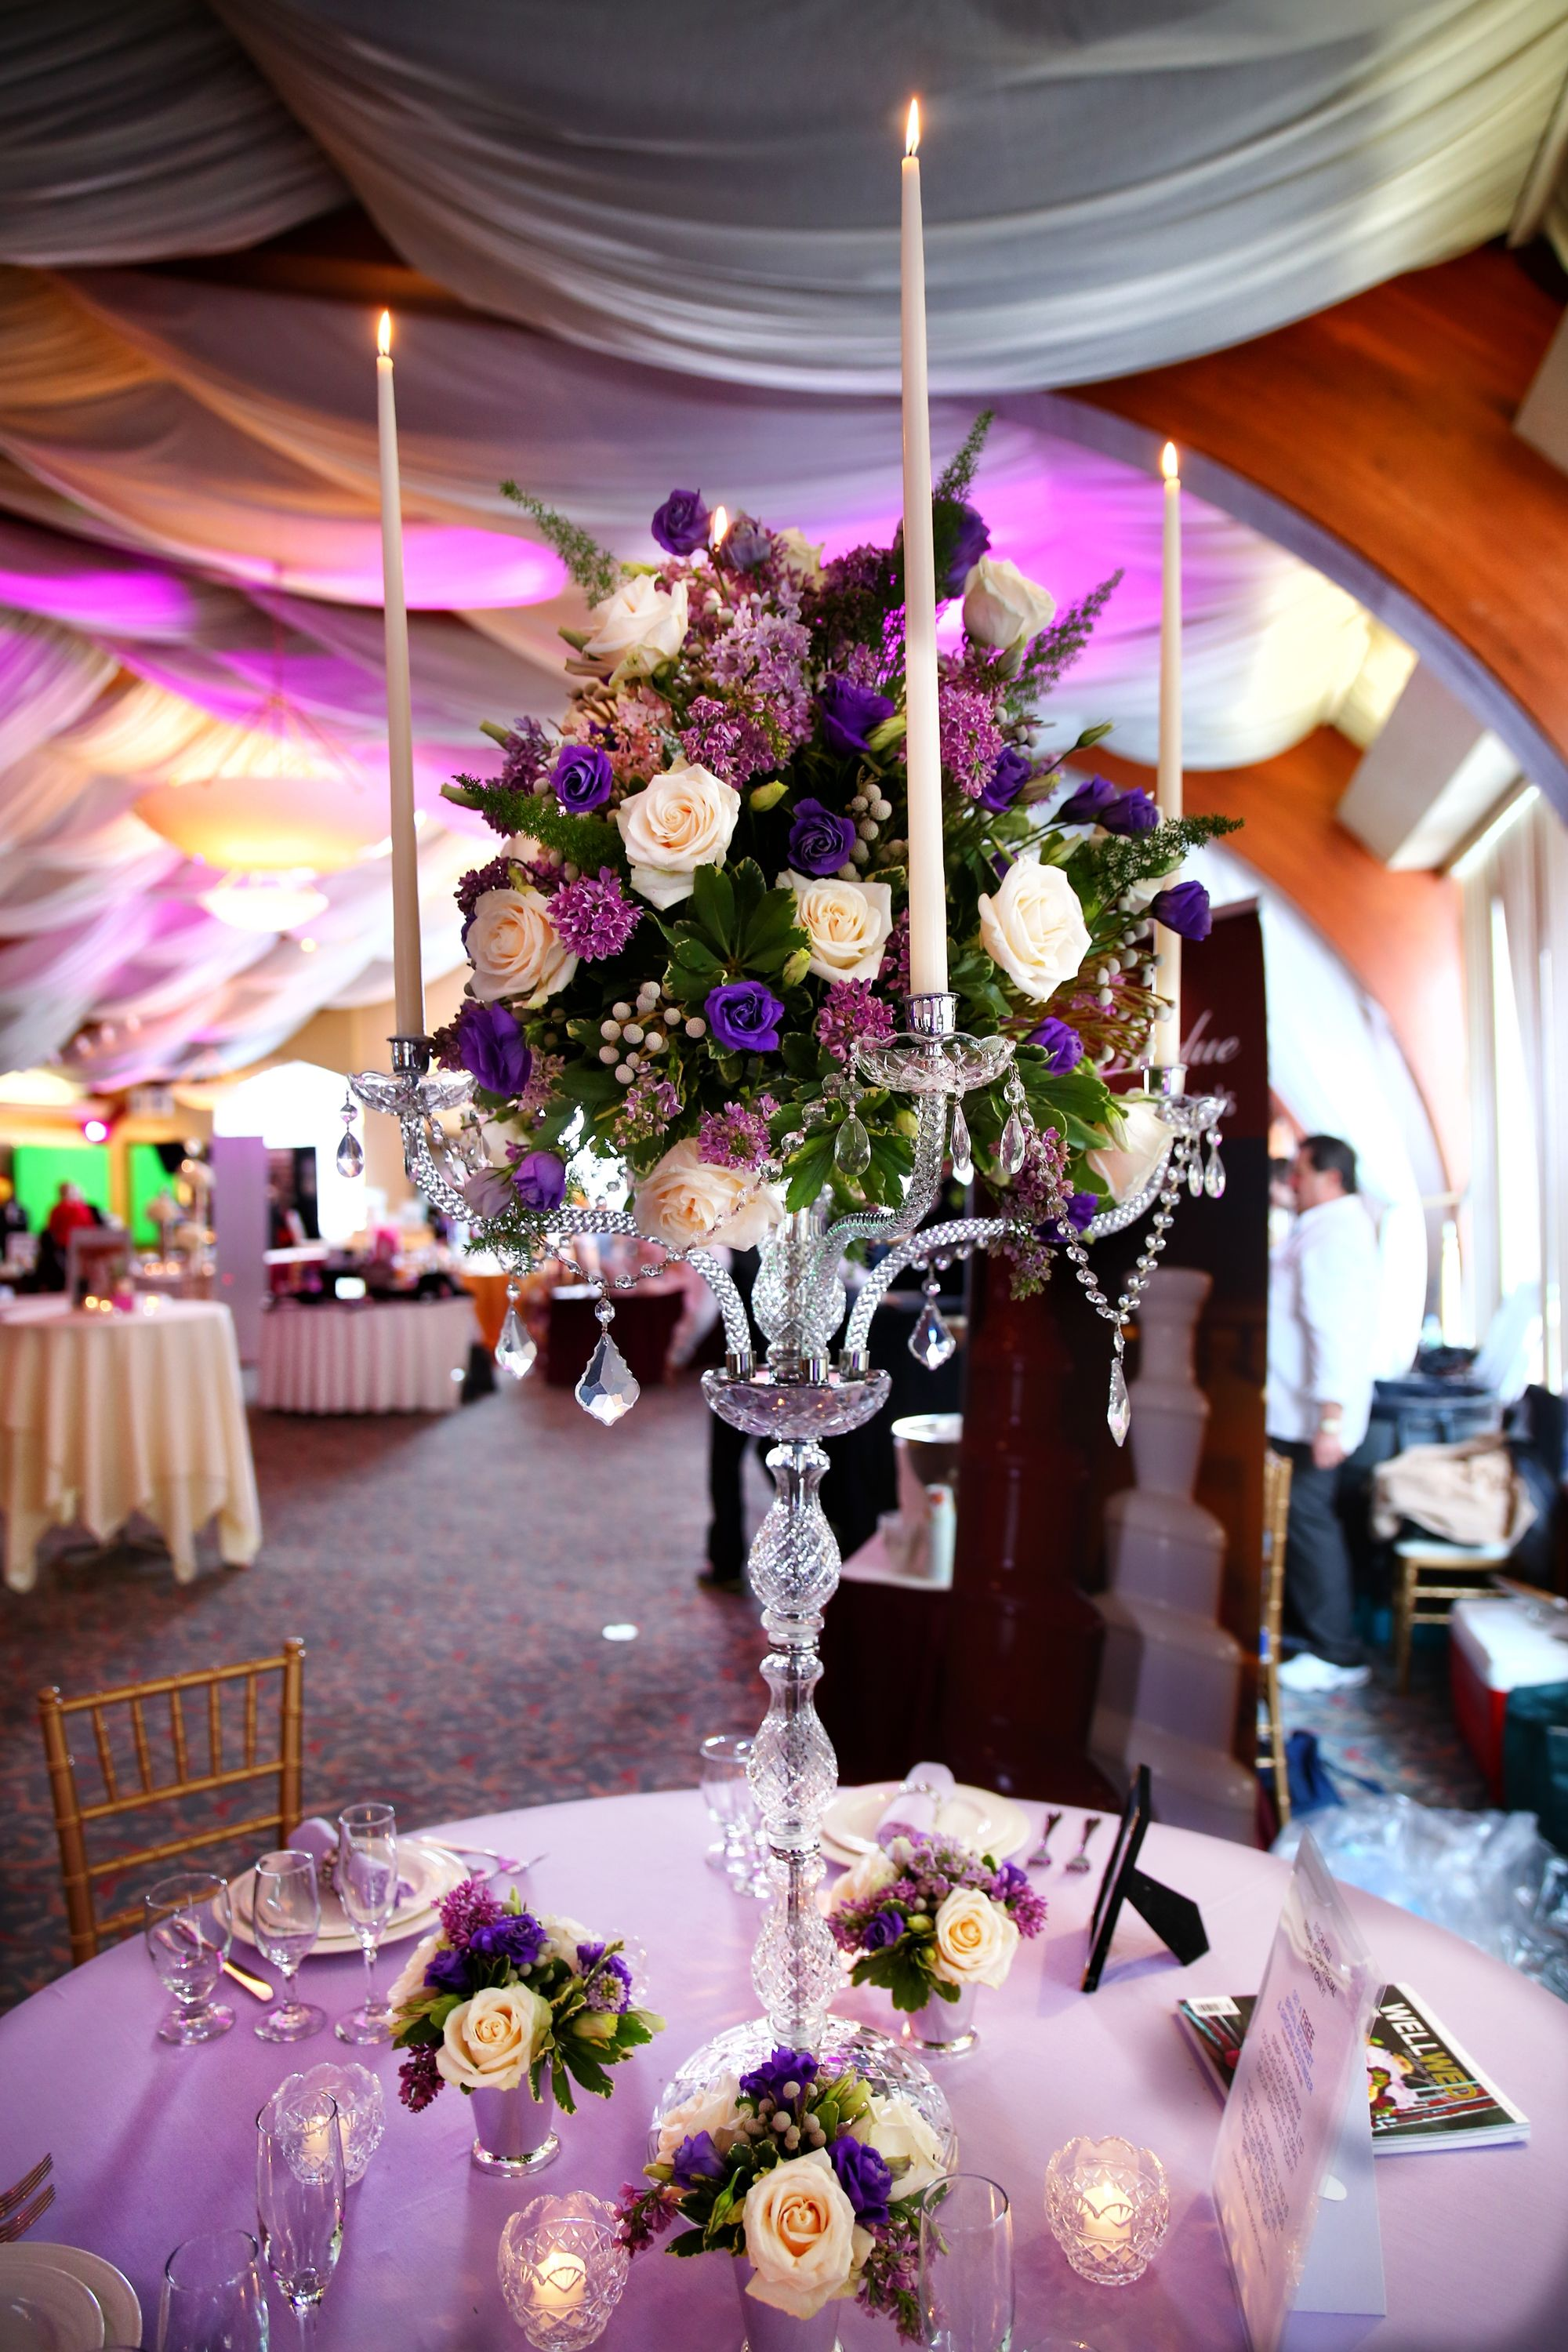 Wedding hall decoration images  tall elegant crystal candelabra with an arrangement of purple and